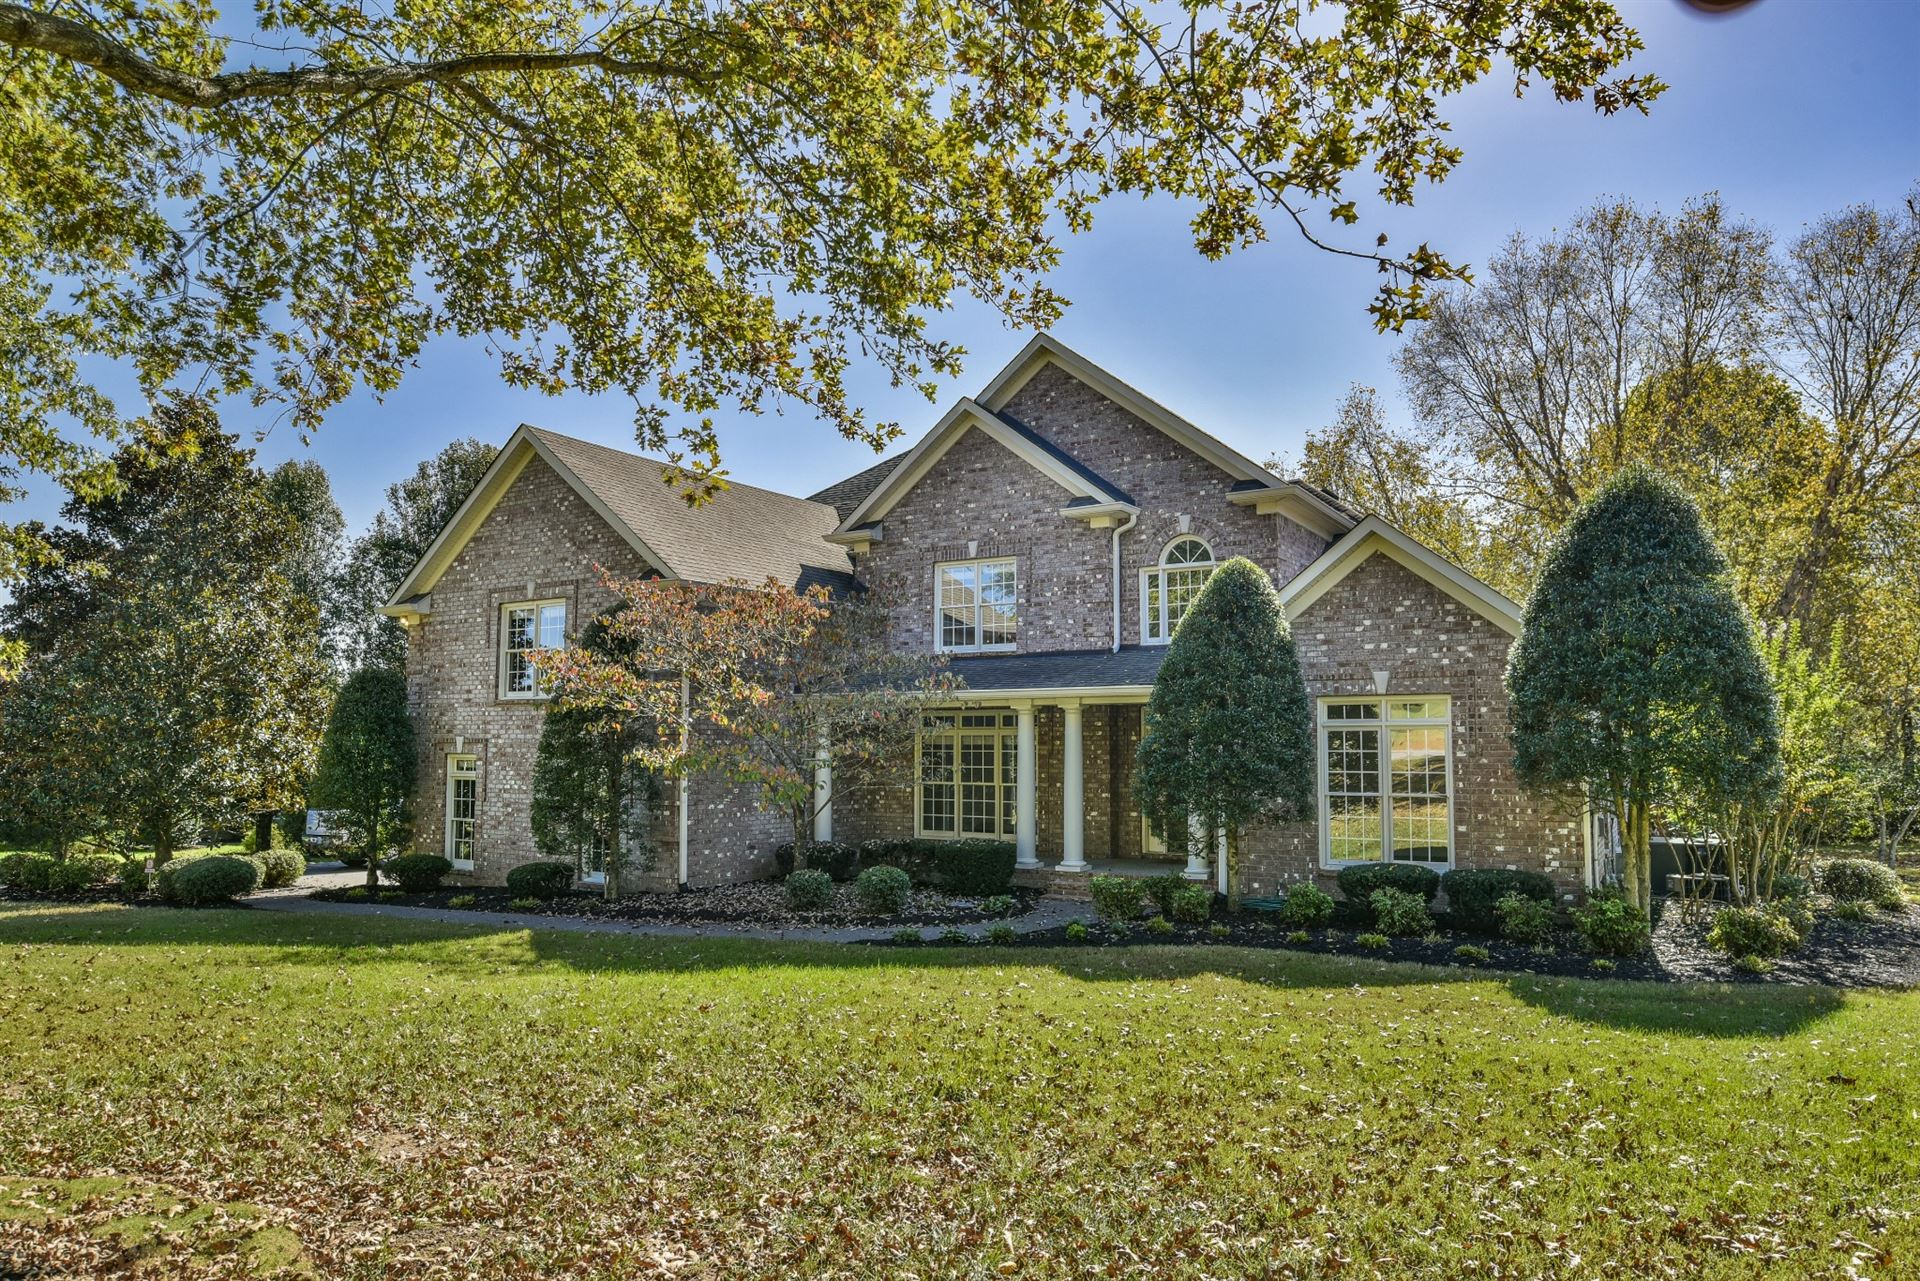 Photo of 1745 Masters Dr, Franklin, TN 37064 (MLS # 2200414)